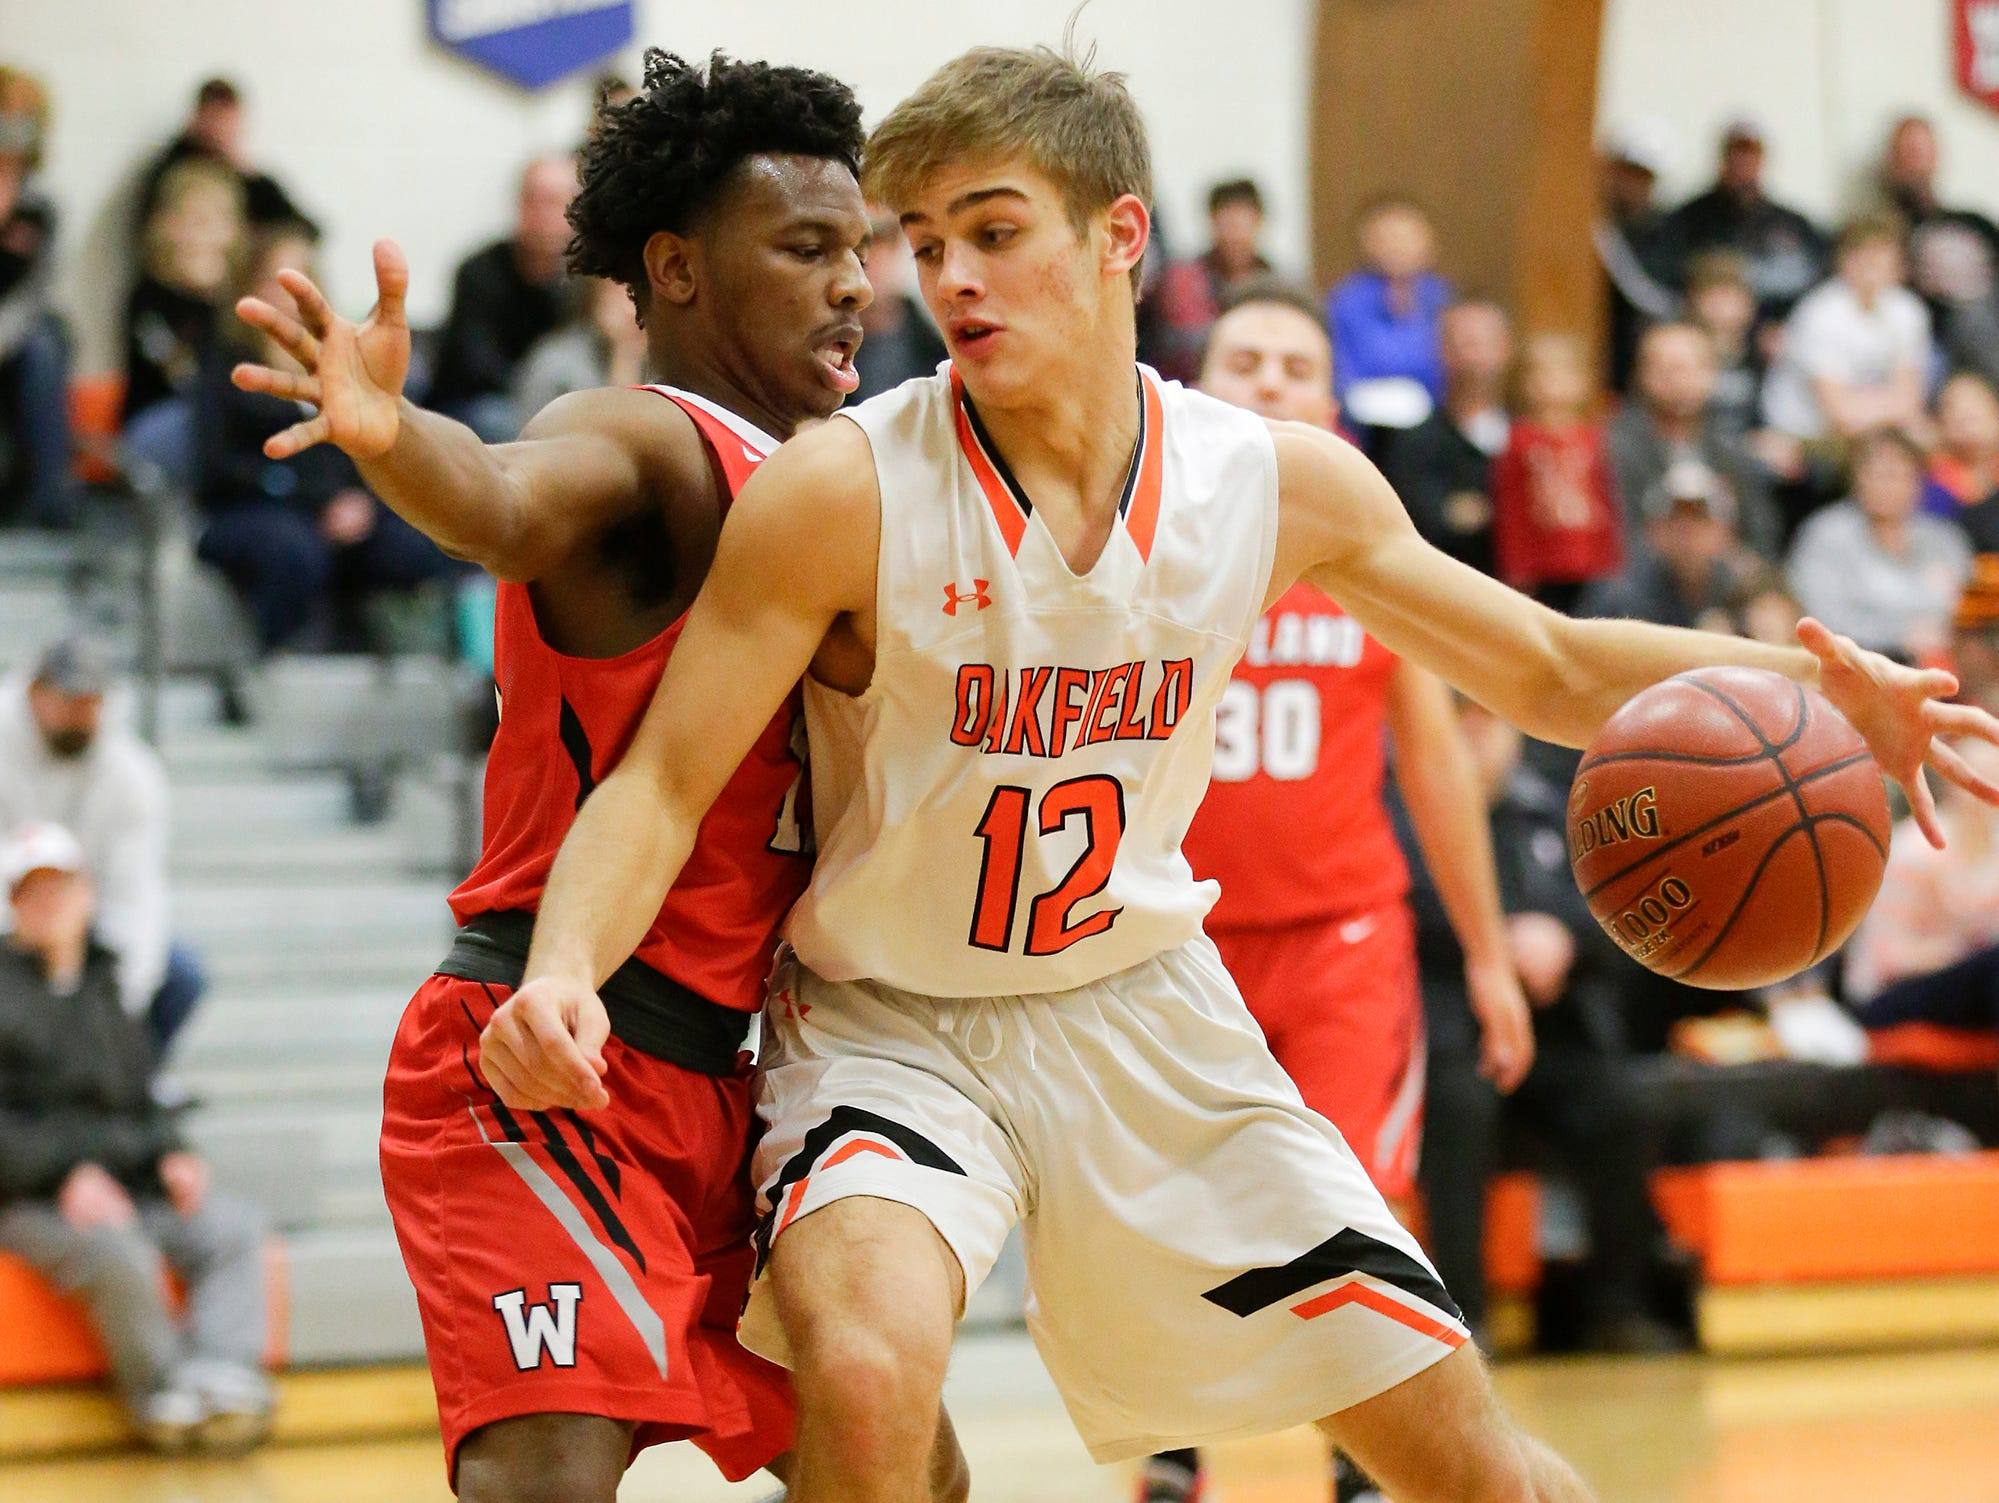 Oakfield High School boys basketball's Zach Seyfert works his way past Wayland Academy's Charles Eubanks January 11, 2019 during their game in Oakfield. Oakfield won the game 56-48. Doug Raflik/USA TODAY NETWORK-Wisconsin